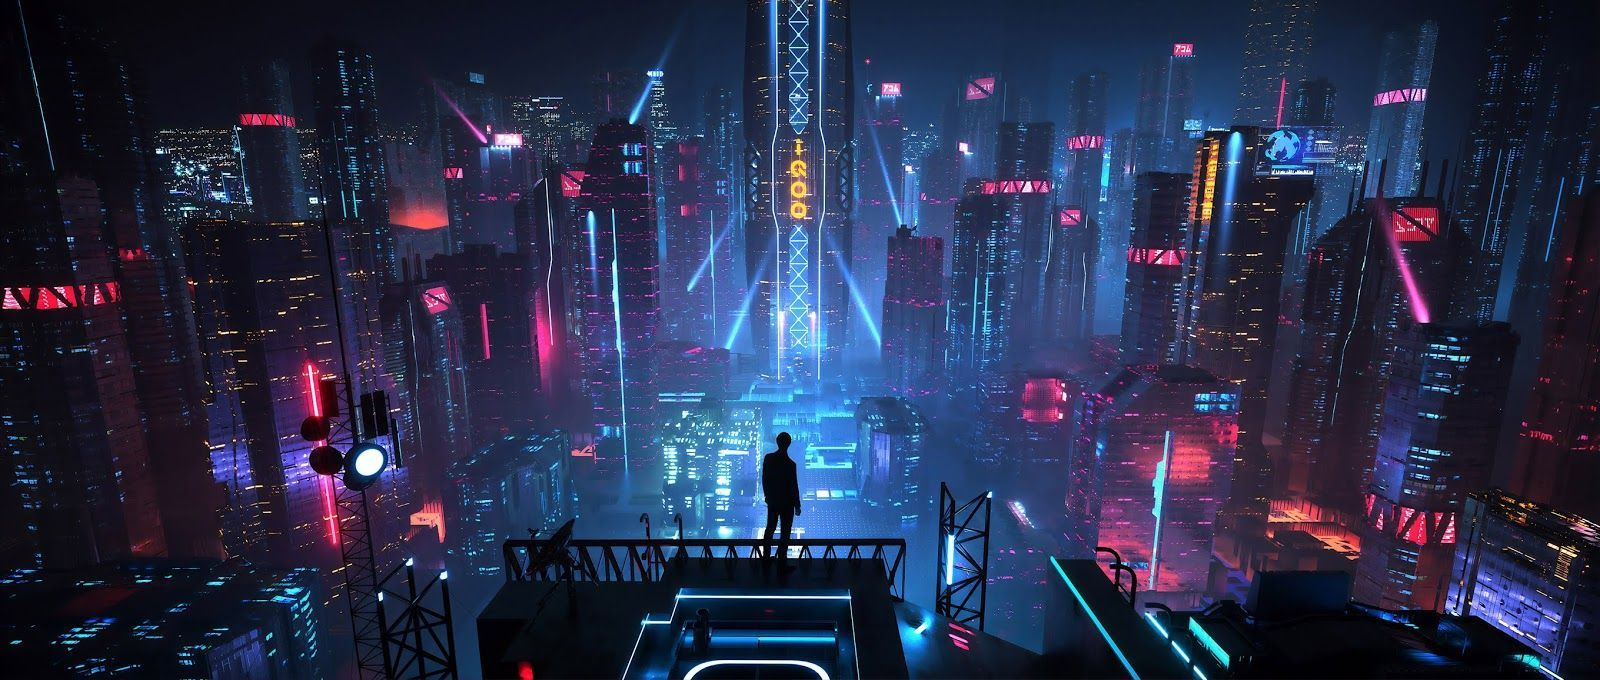 Futuristic City Wallpaper Desktop Background 374291419031817199 Cyberpunk City City Wallpaper Futuristic City